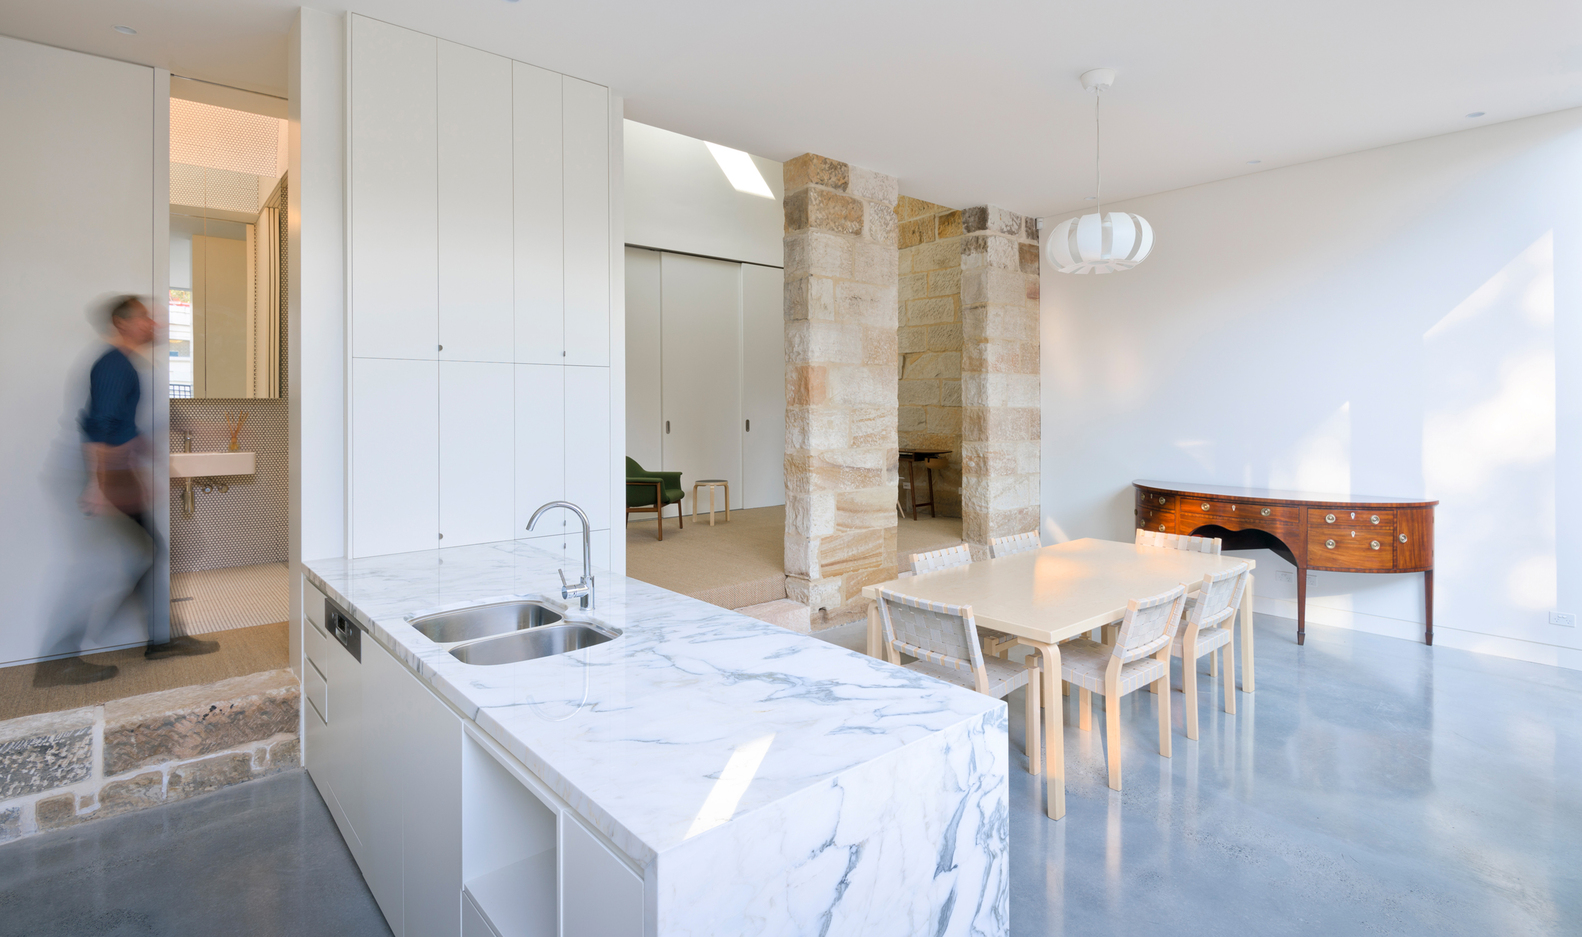 Balmain Sandstone Cottage by Carterwilliamson Architects (via Lunchbox Architect)